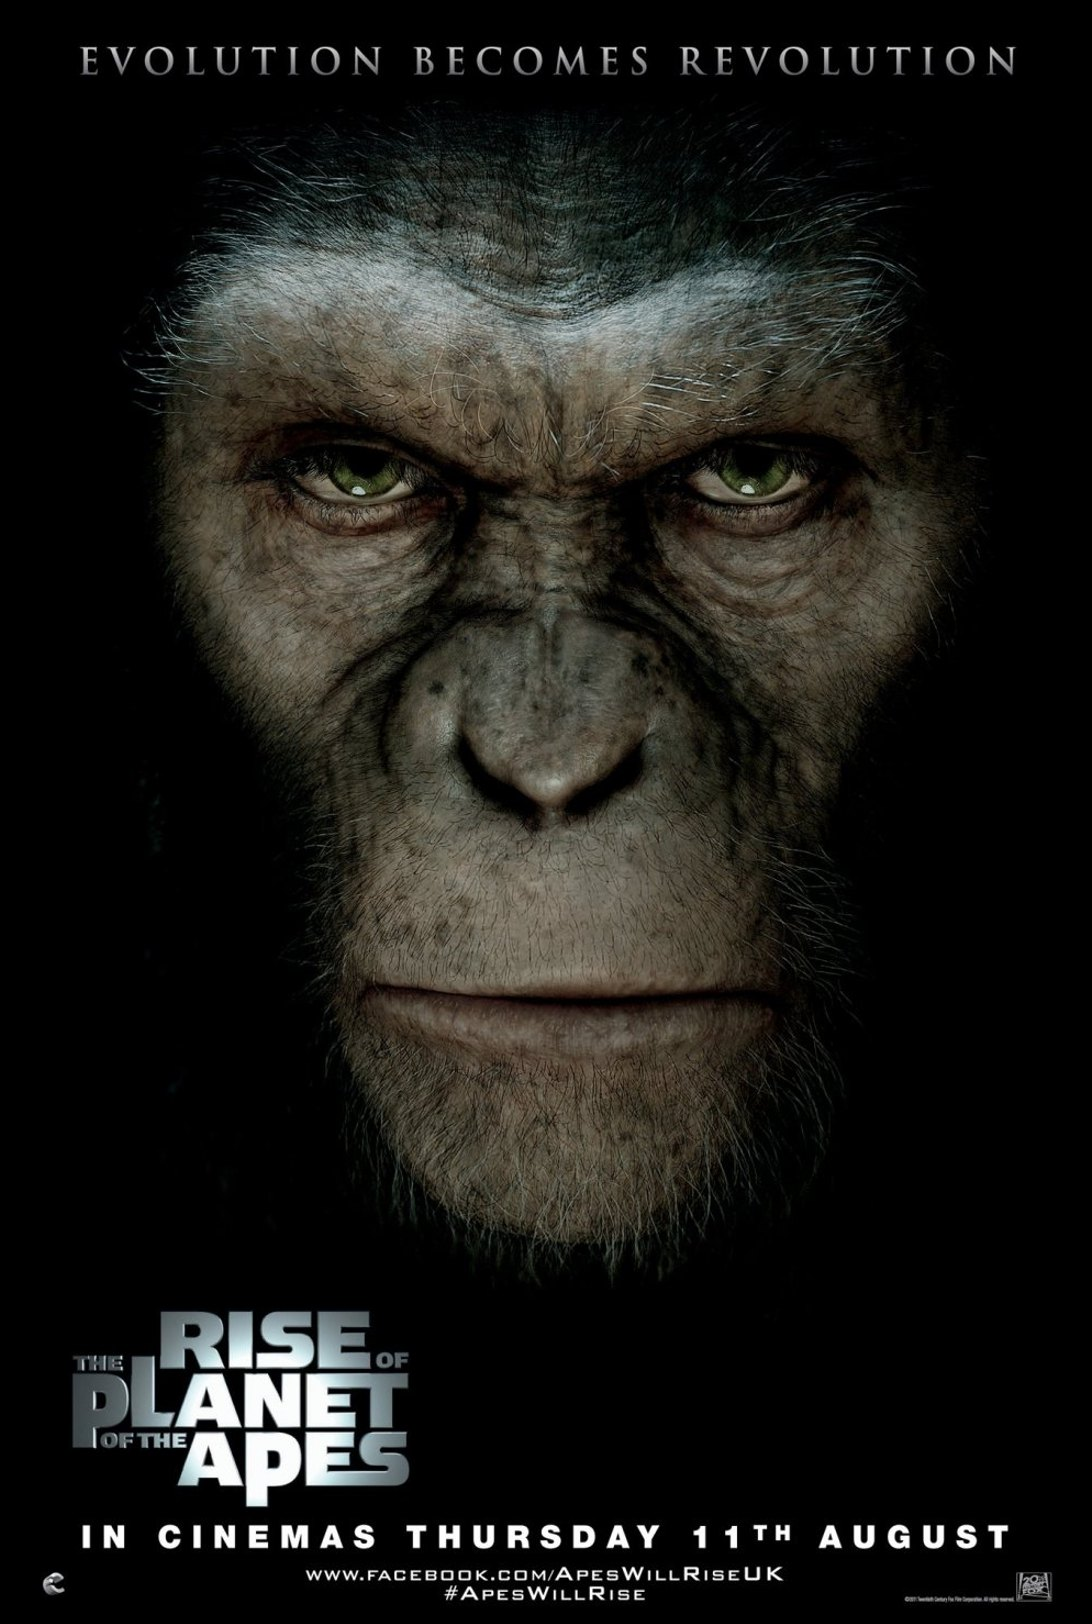 Dawn of the Planet of the Apes sequel